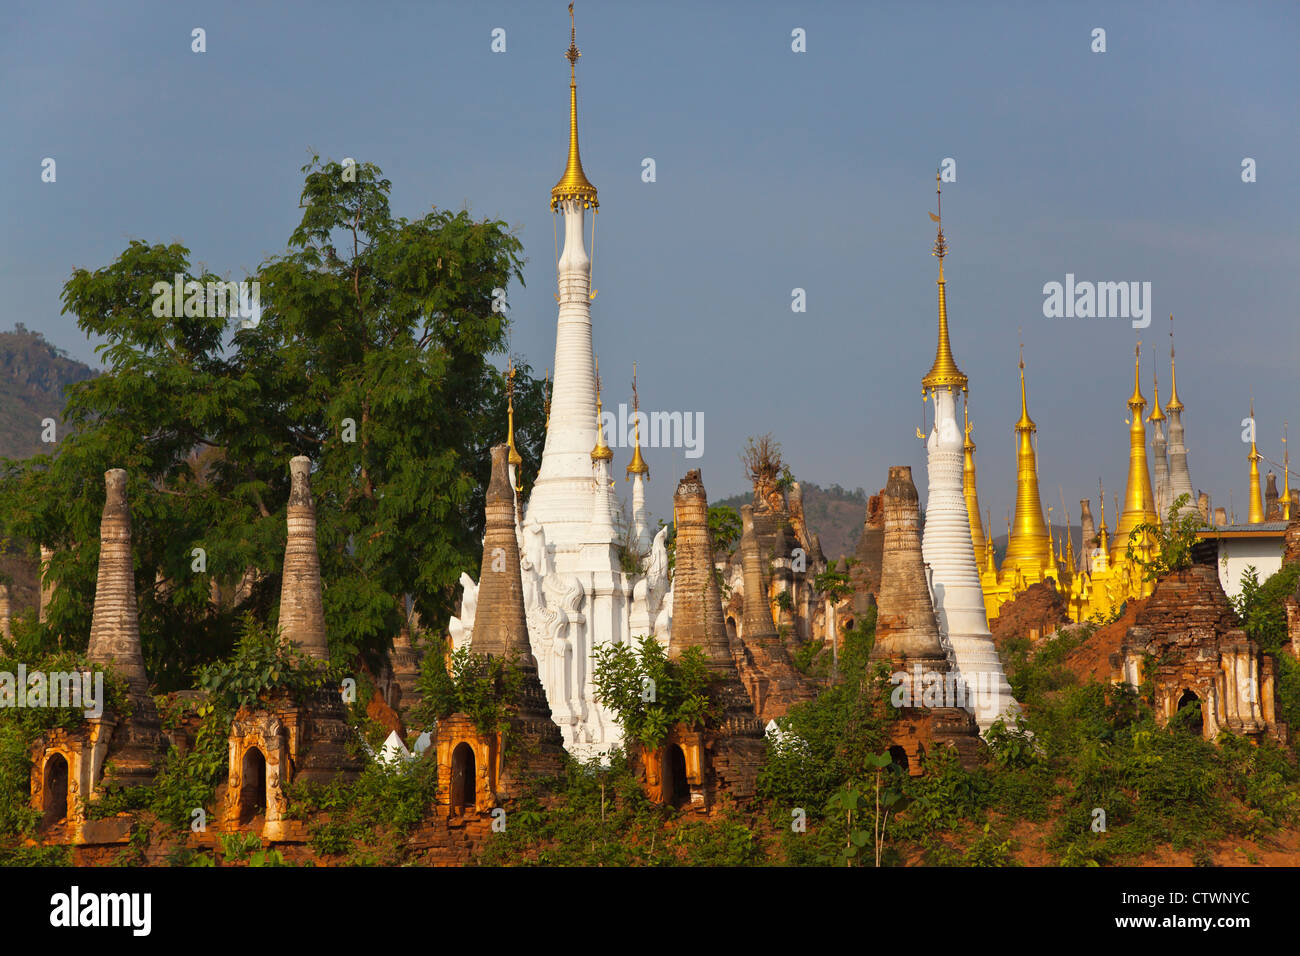 NYAUNG OHAK and SHWE INN THEIN are located at INDEIN and are BUDDHIST SHRINES - INLE LAKE, MYANMAR - Stock Image